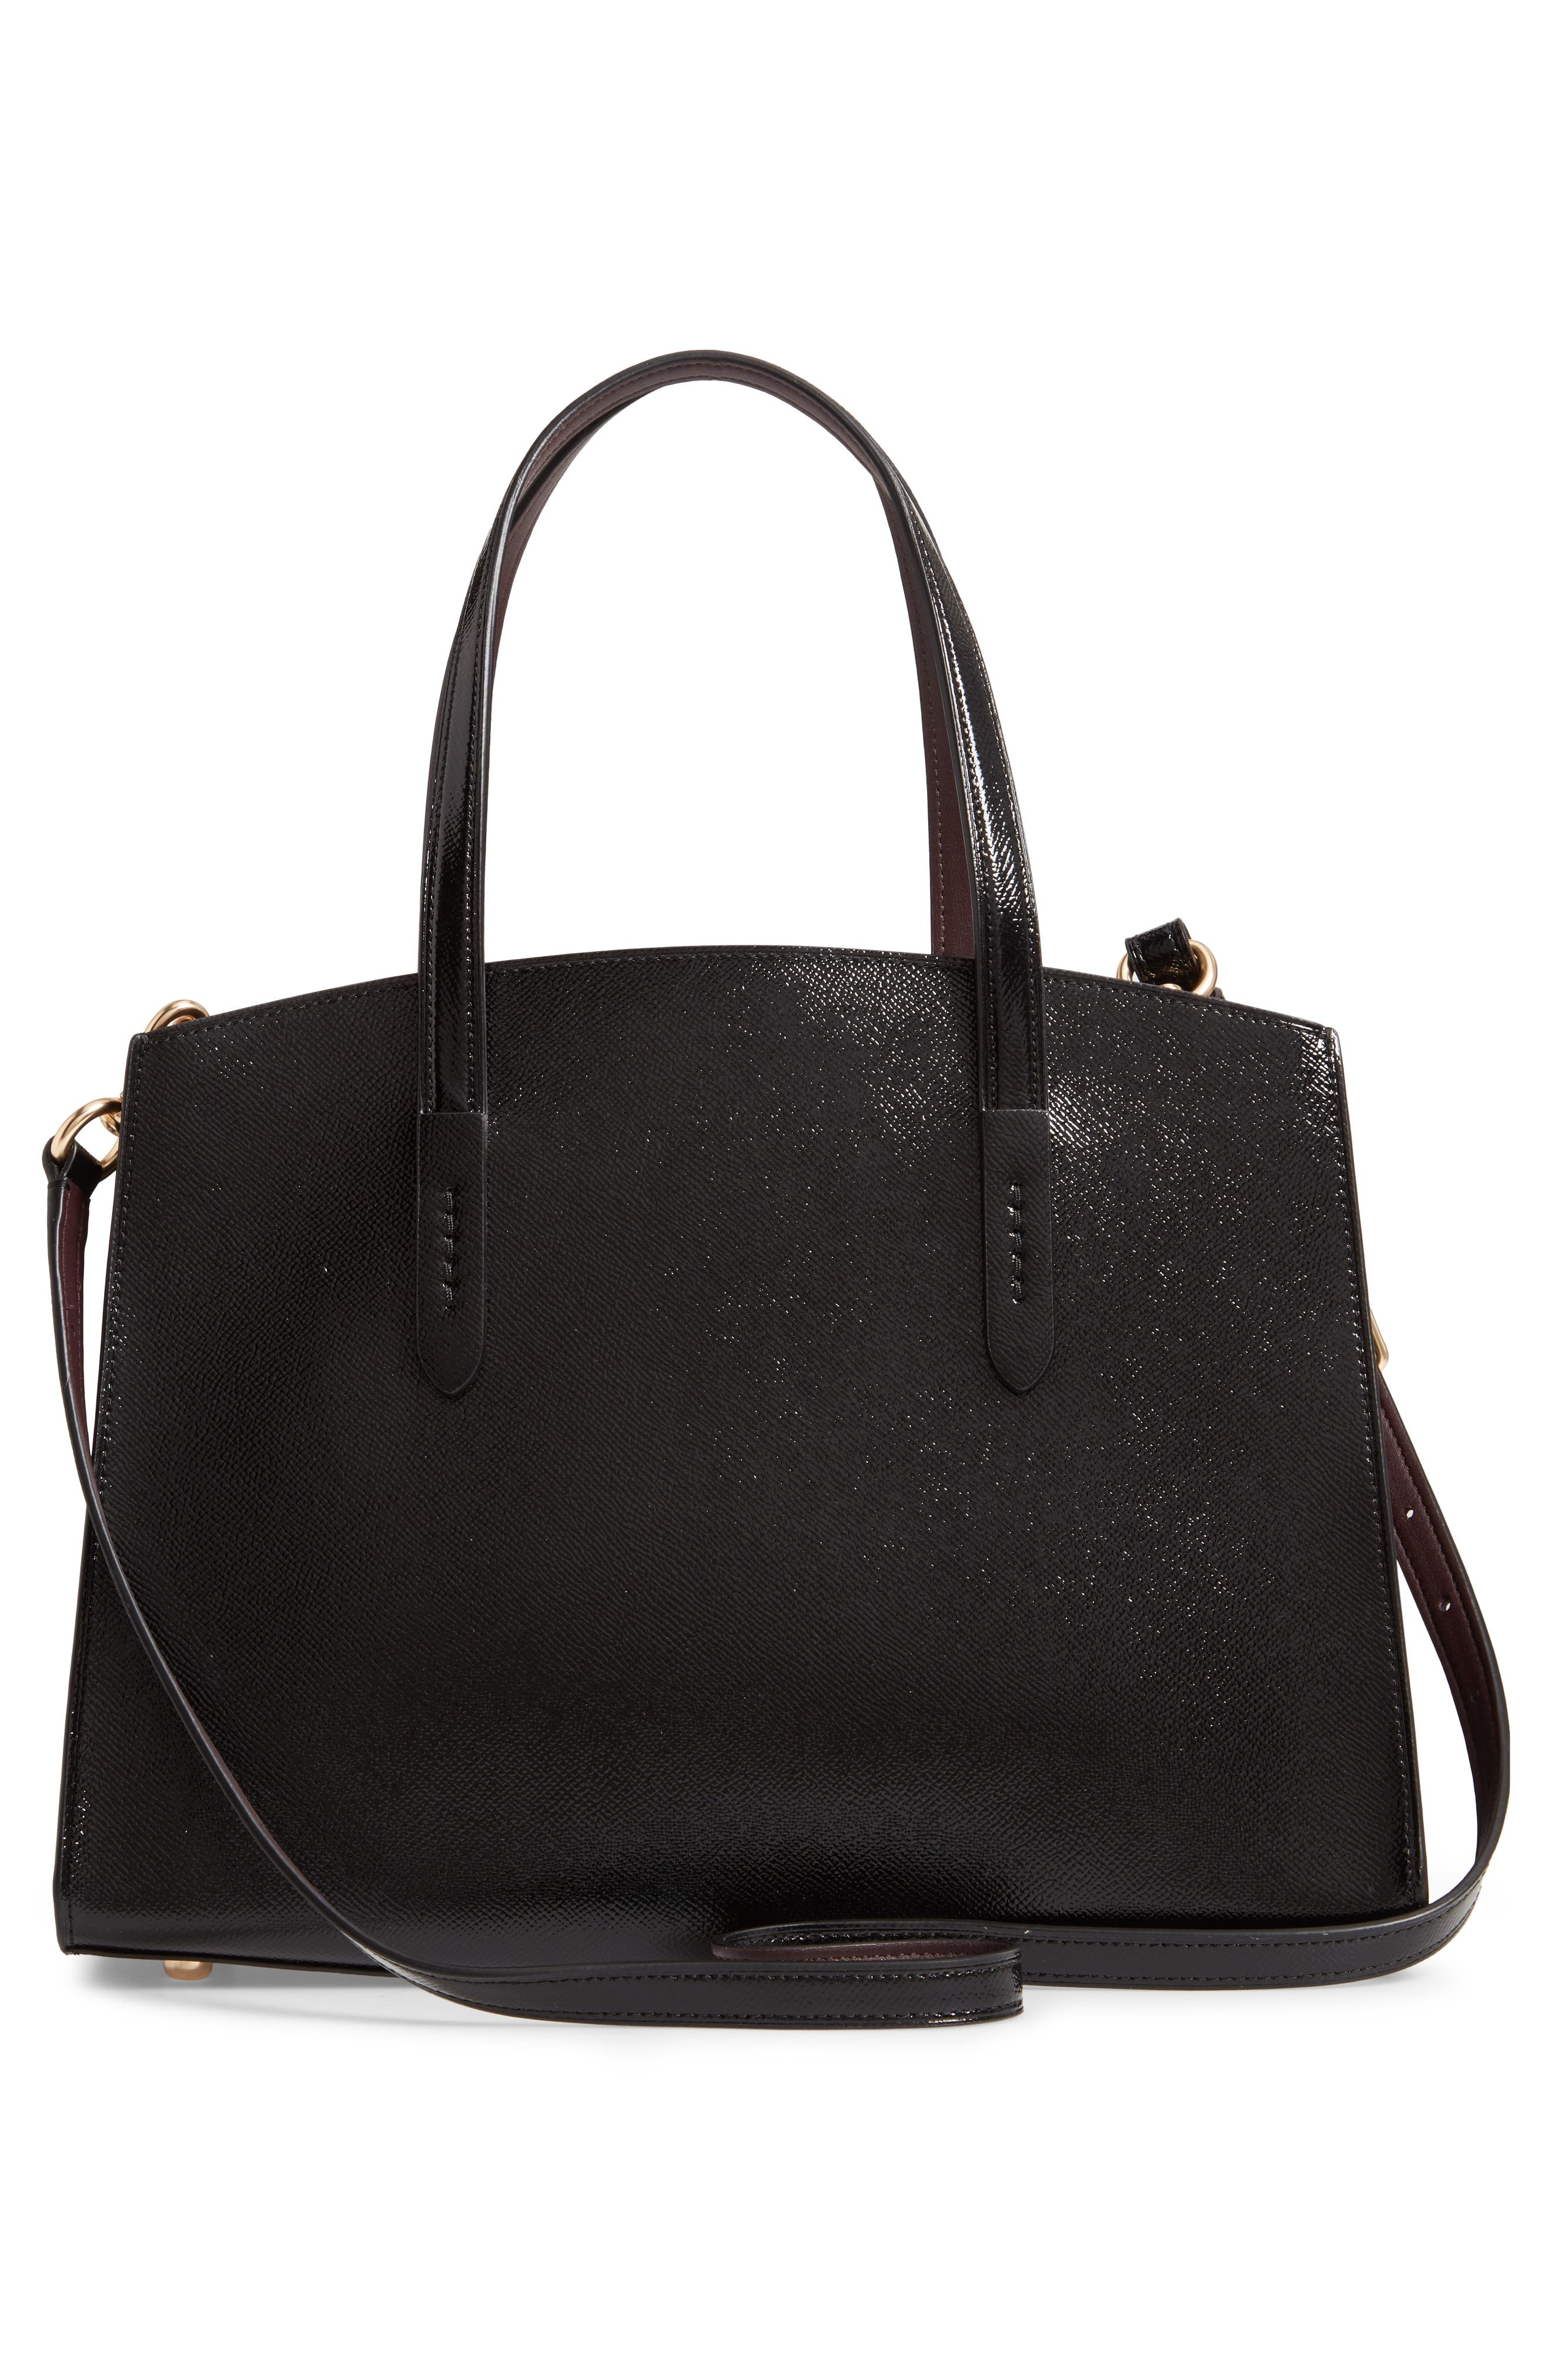 COACH,                             Charlie Patent Leather Tote,                             Alternate thumbnail 3, color,                             BLACK